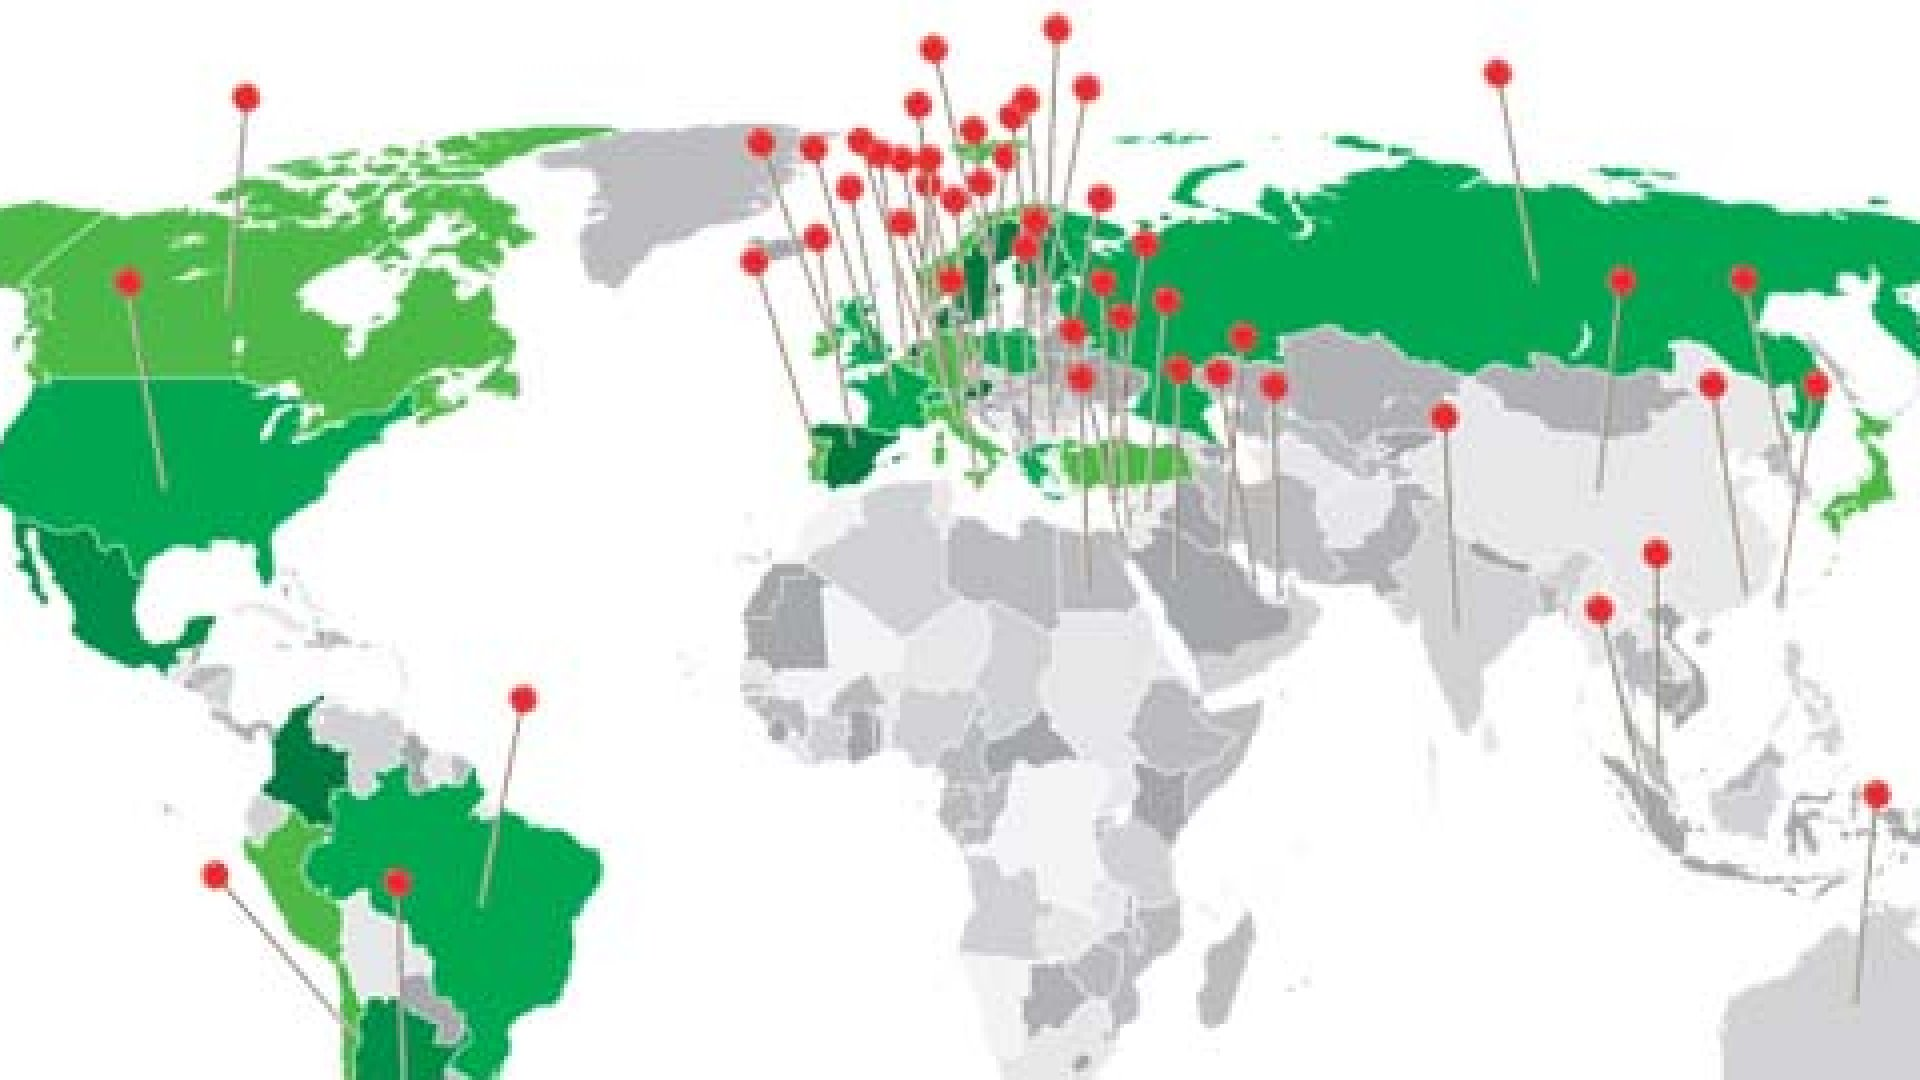 <strong>All Over the Map</strong> In the two years since its founding, Groupon has seen its business model copied by companies in about 50 countries (we marked them with red pins). But Groupon has a new strategy to broaden its global dominion (shown on the green areas of the map).